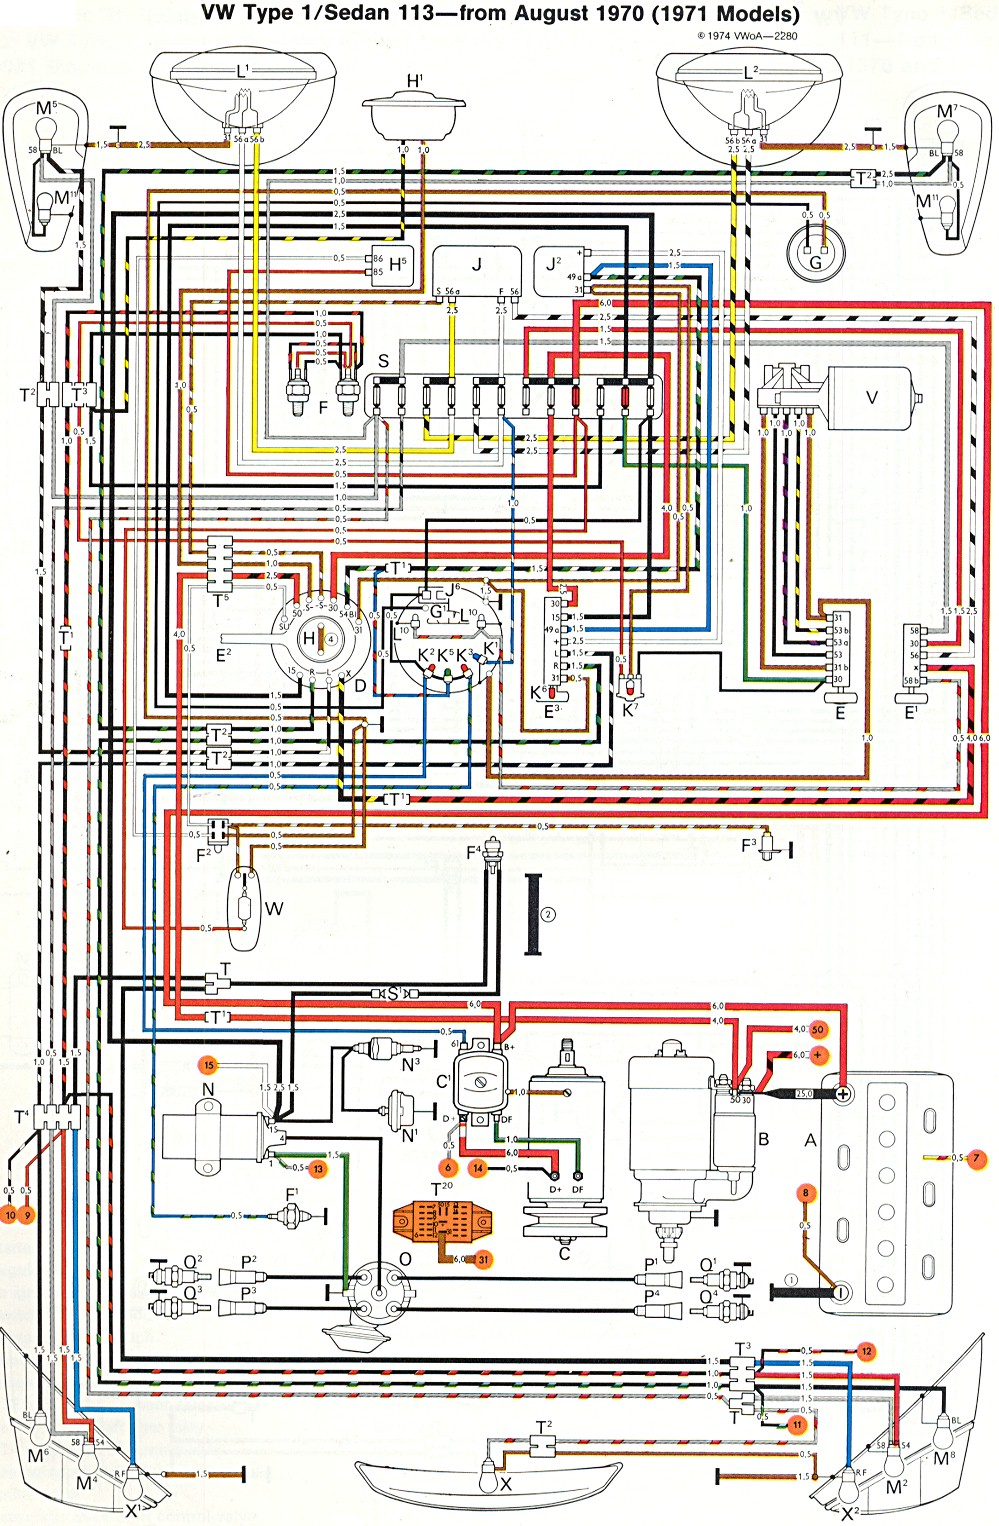 bug_super_71 vw wiring harness diagram cj7 wiring harness diagram \u2022 wiring 1965 VW Beetle Wiring Diagram at soozxer.org